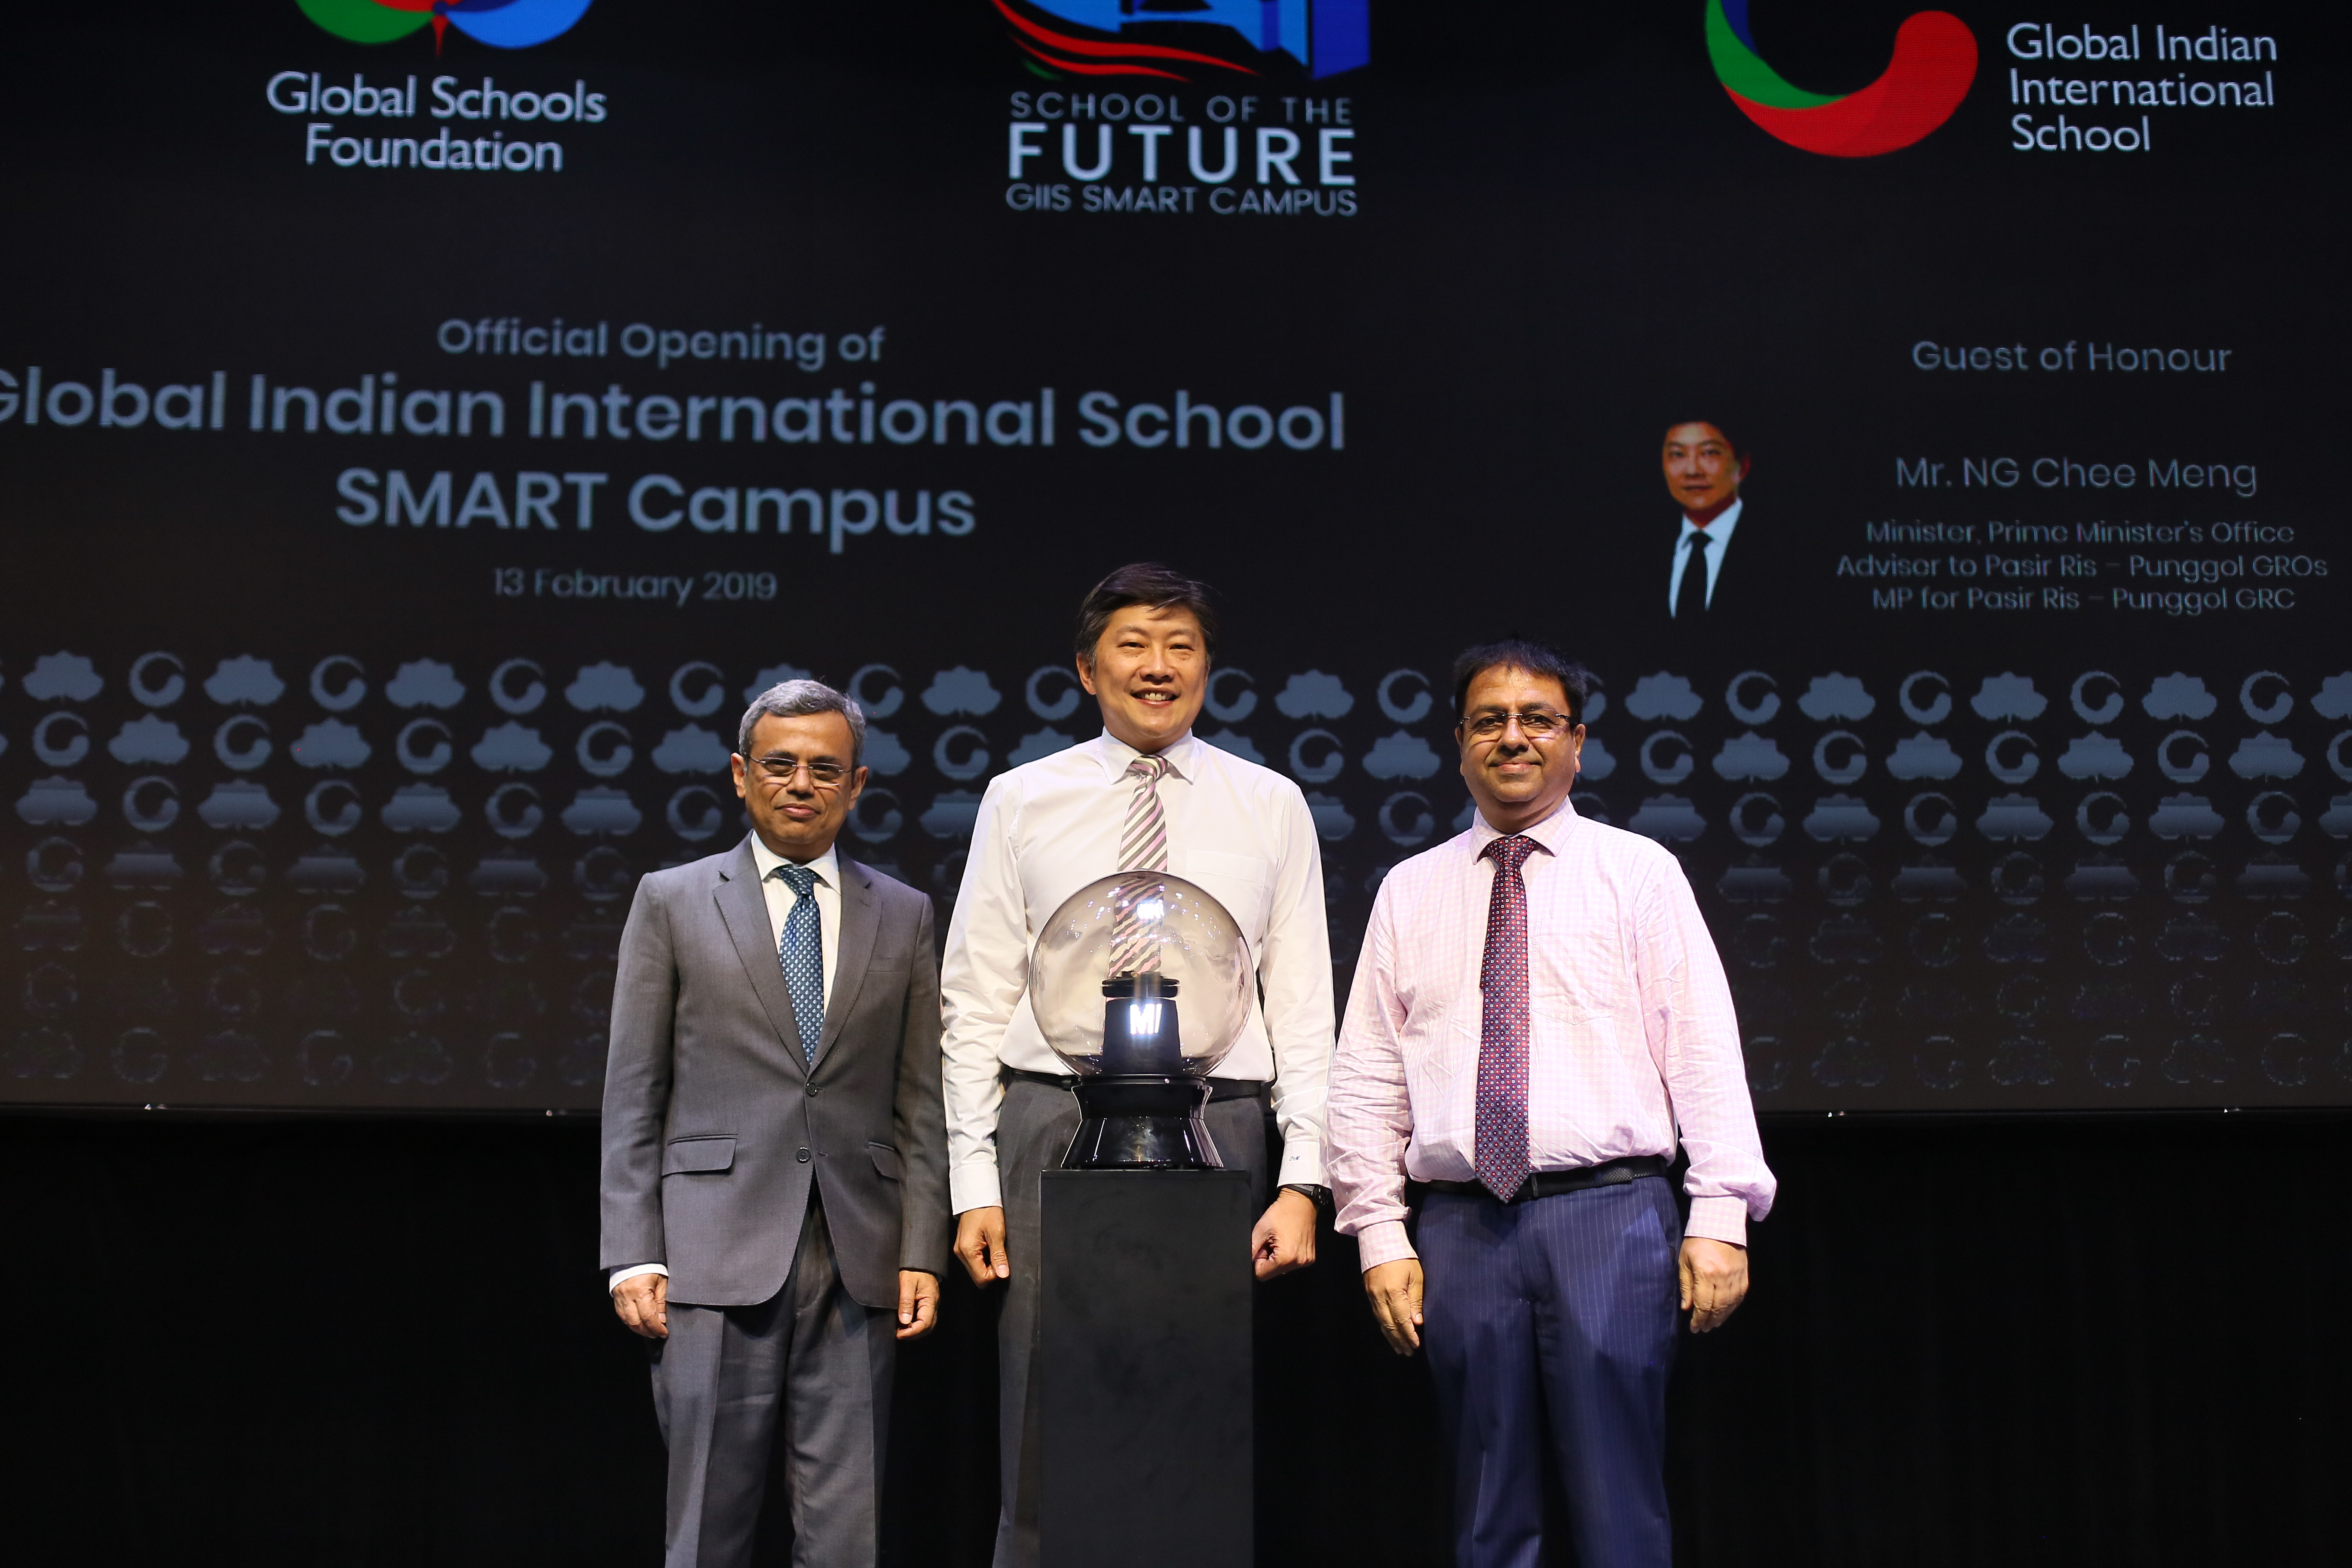 First Global School to Cater to Indian Students with a Smart Campus Inaugurated in Singapore